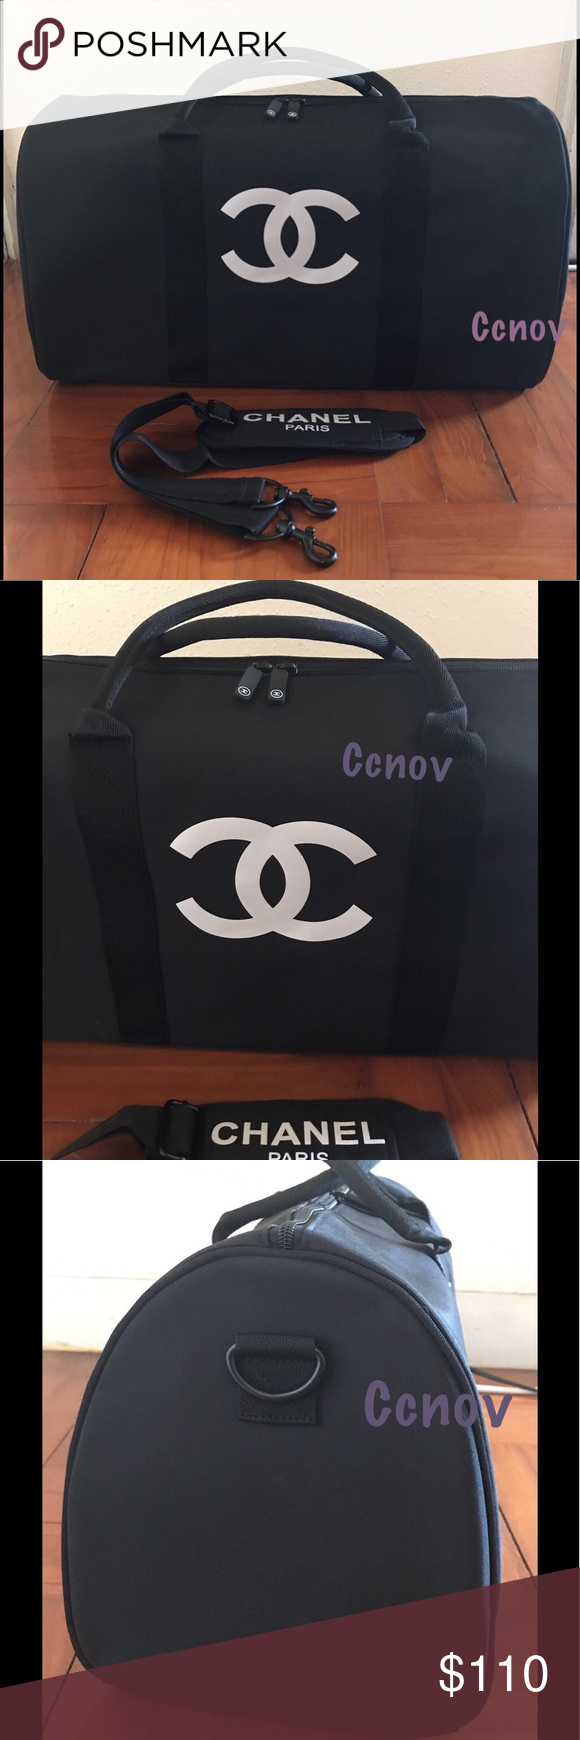 cba57cc48964 Authentic Chanel Travel Duffle Strap Bag VIP Price is firm!!! Authentic  Travel Bag